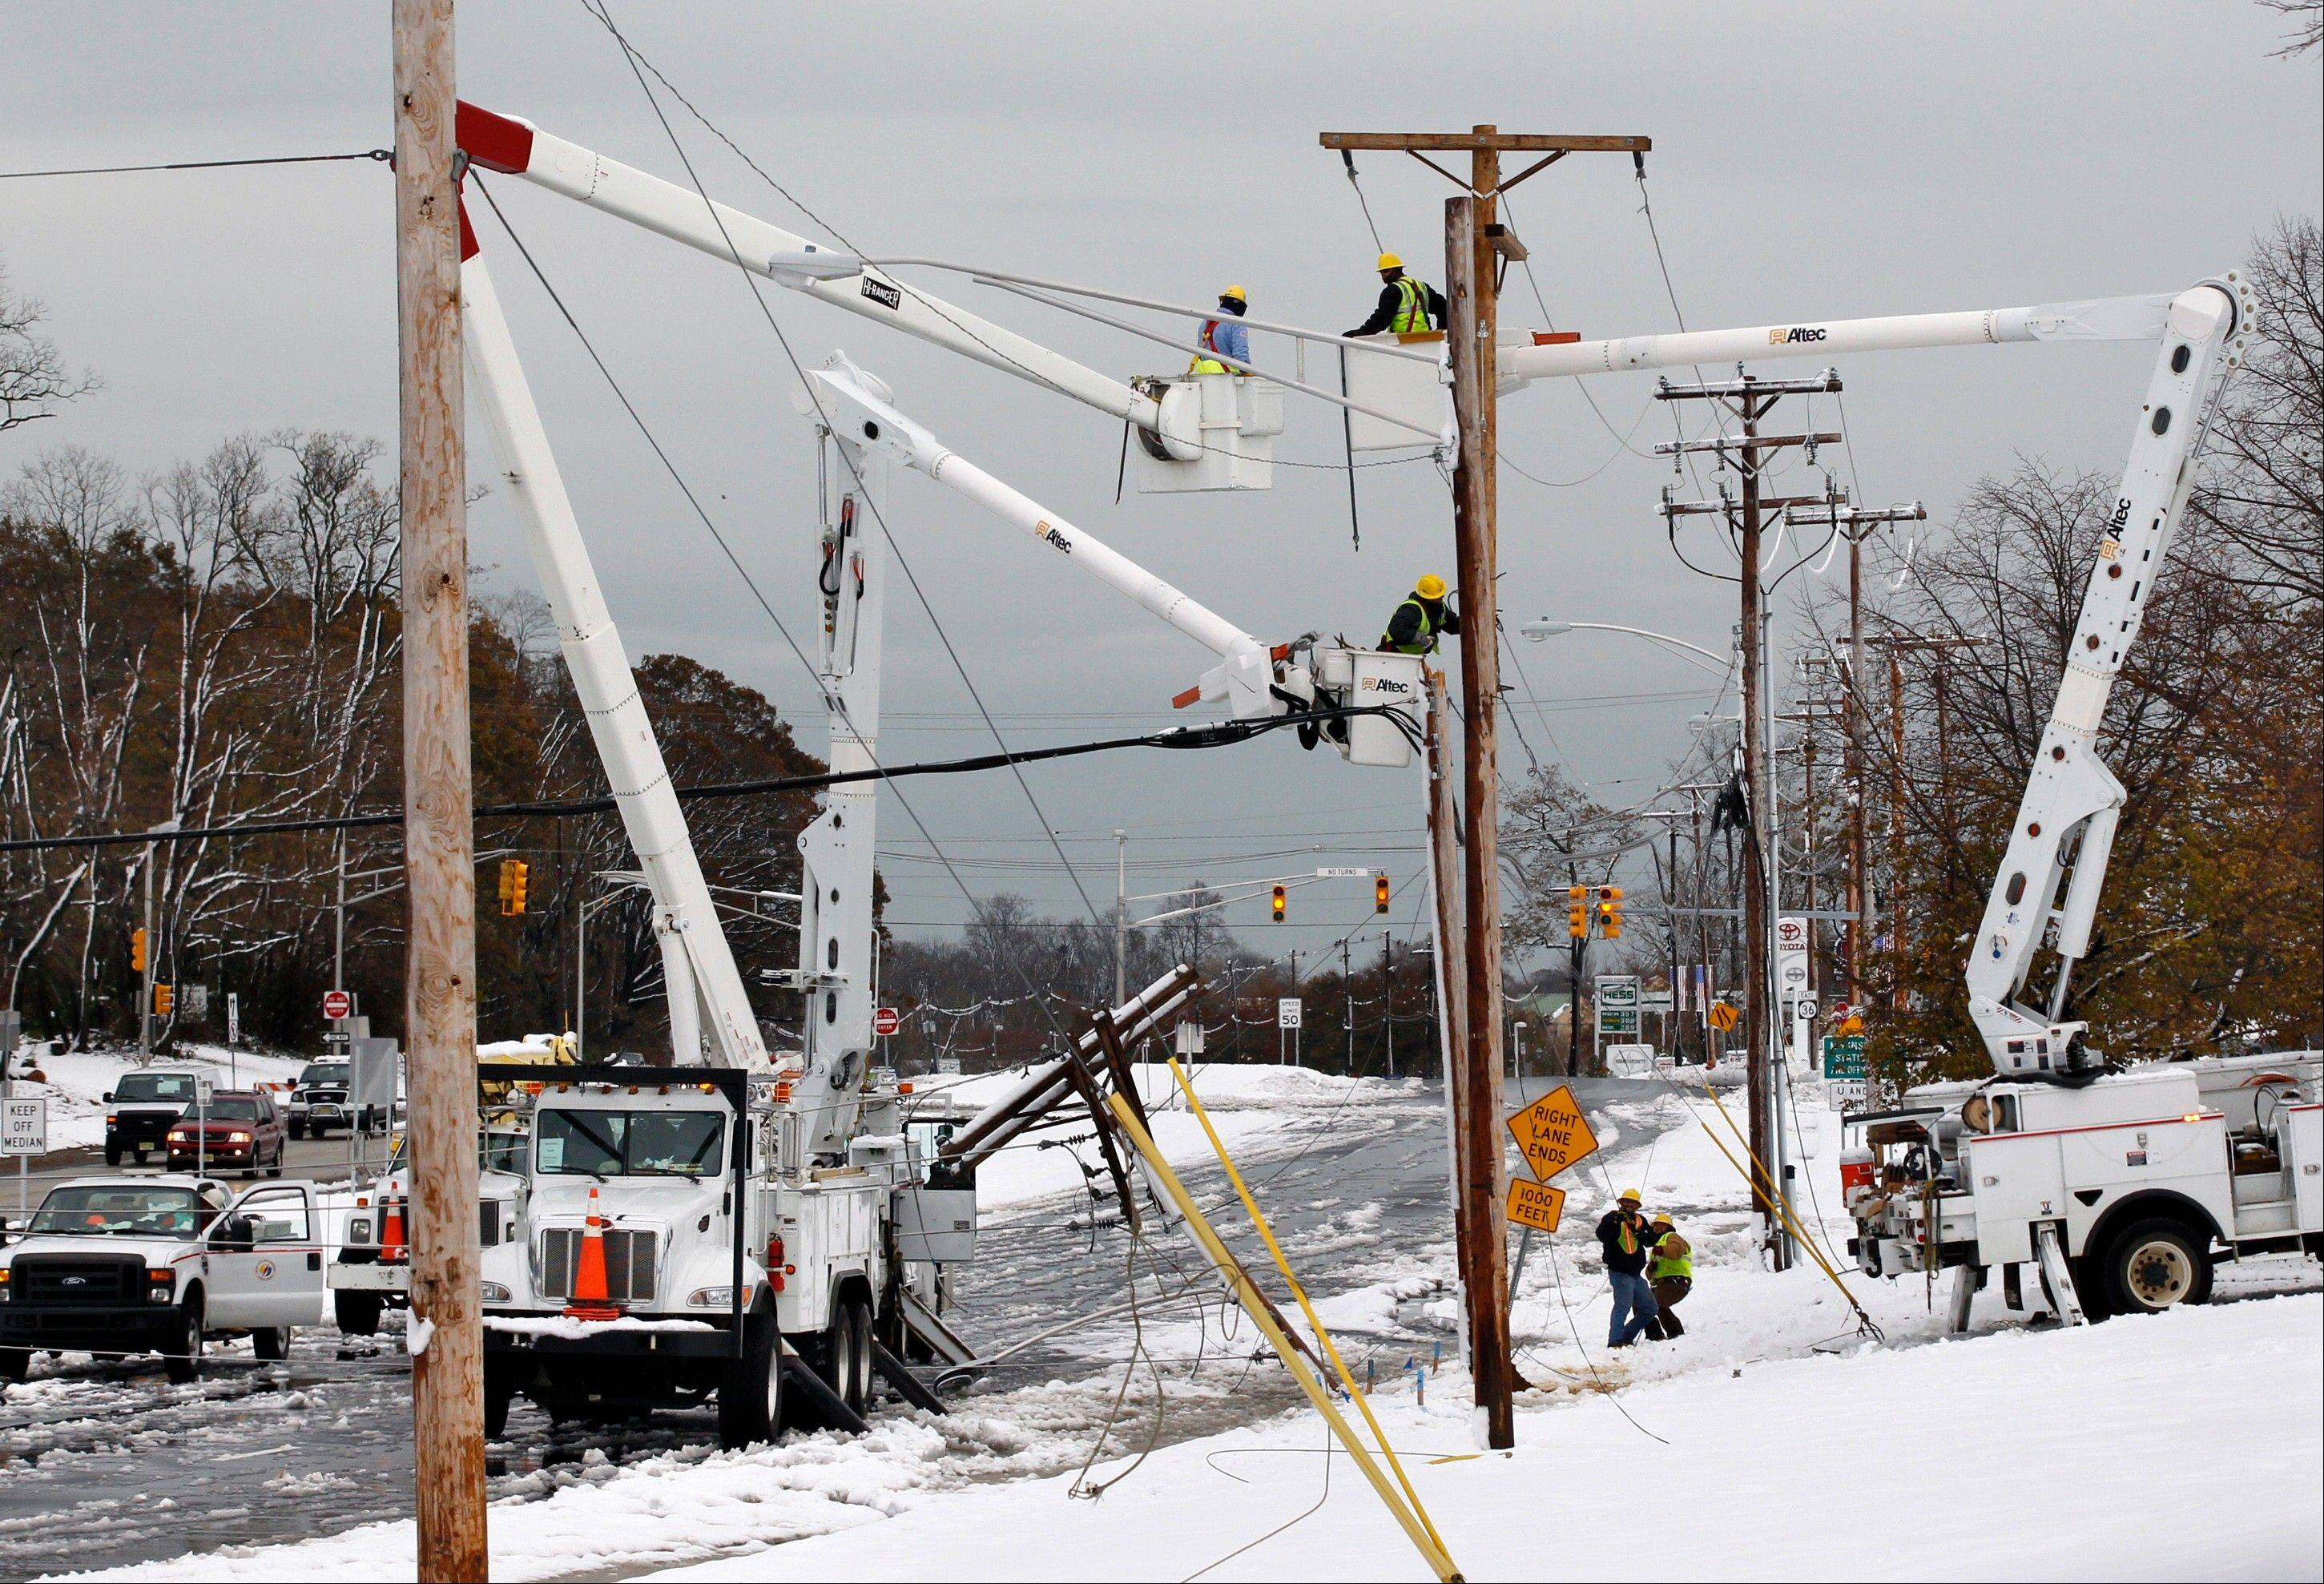 Crews work to repair downed wires Thursday in Eatontown, N.J., after a nor�easter brought high winds and dumped as much as a foot of snow overnight in the region pounded by Superstorm Sandy last week.